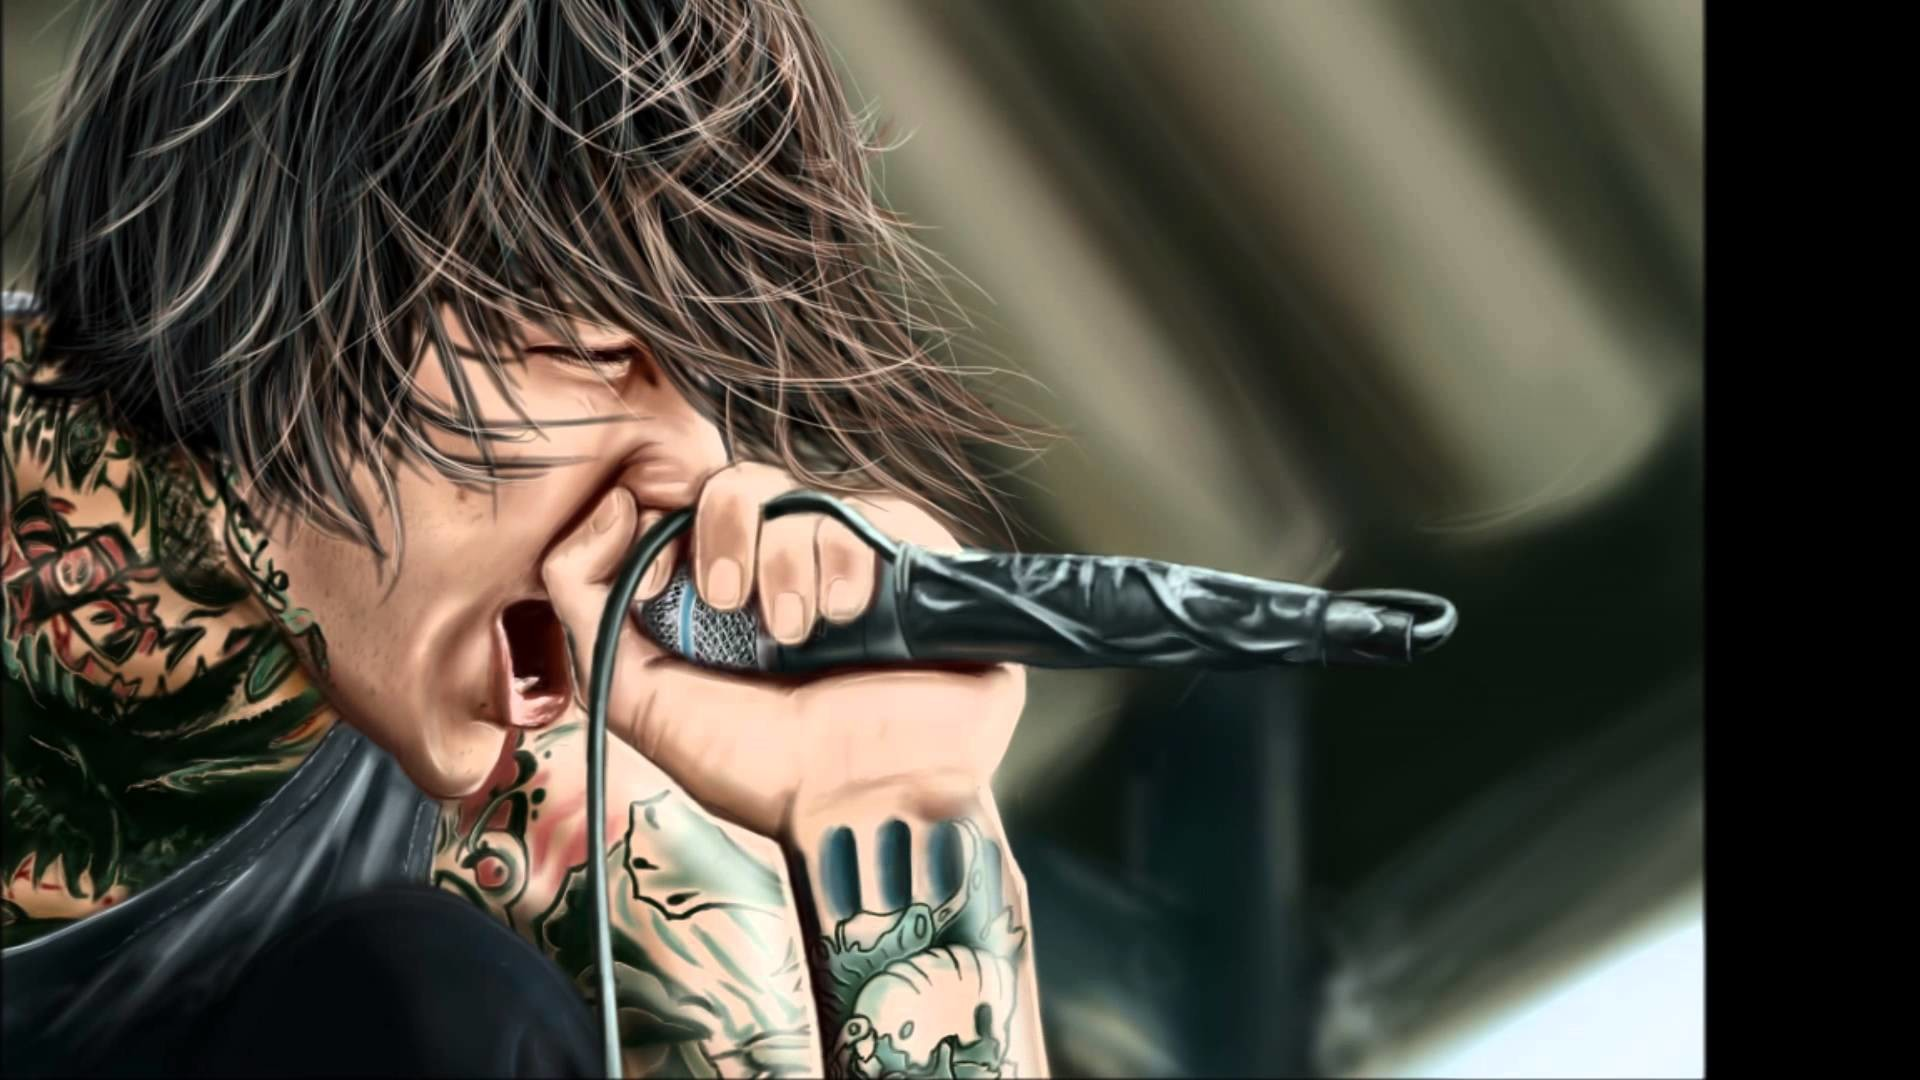 1920x1080 Mitch Lucker Wallpaper